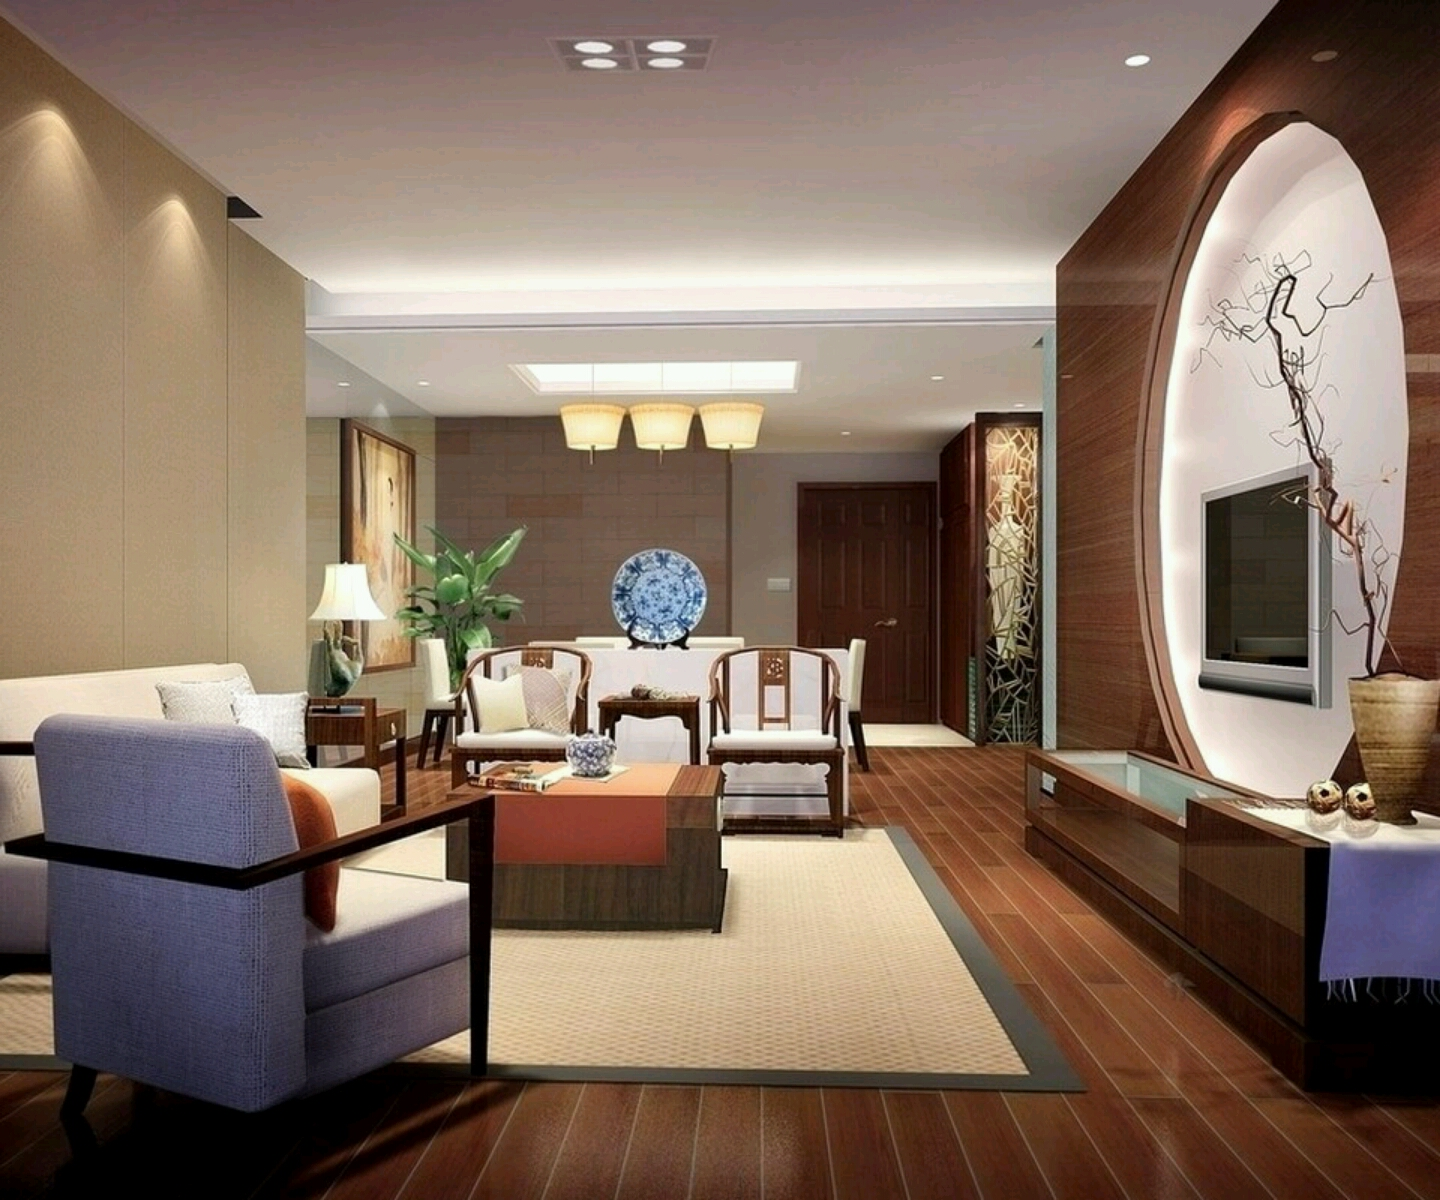 Luxury homes interior decoration living room designs ideas for New living room decor